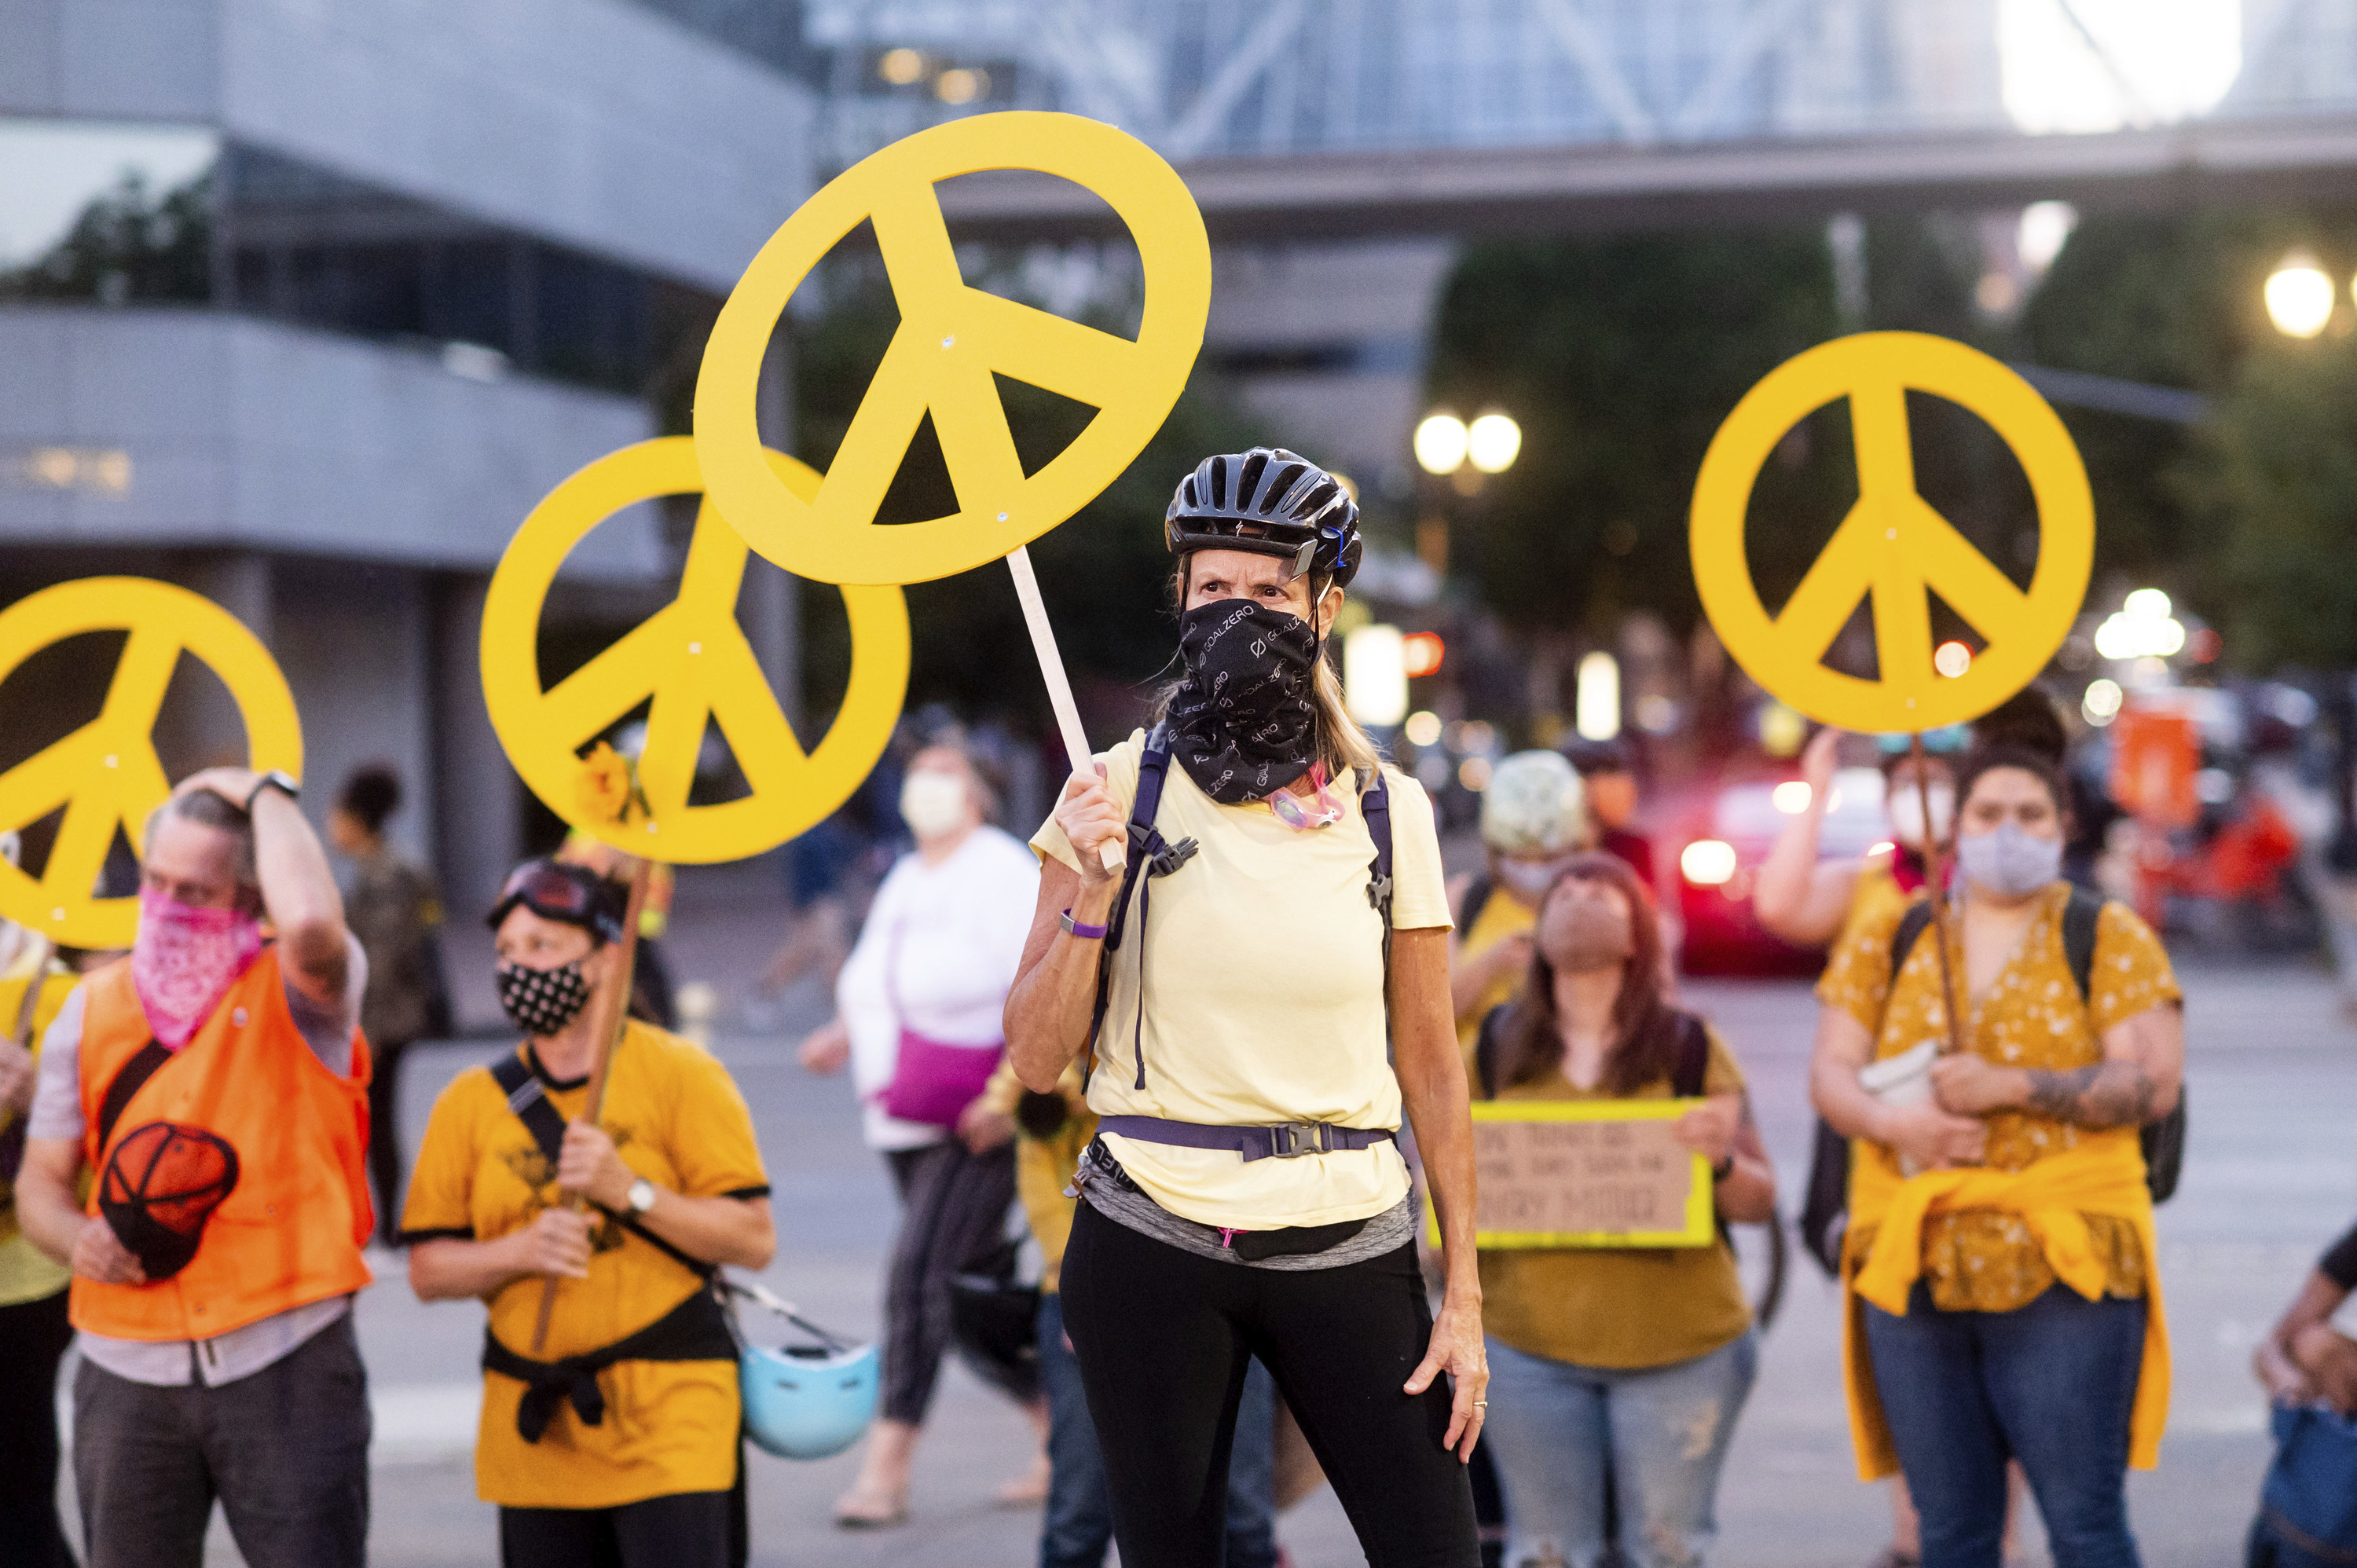 A woman holds a yellow peace sign with others in the crowd wearing matching yellow shirts doing the same during a protest